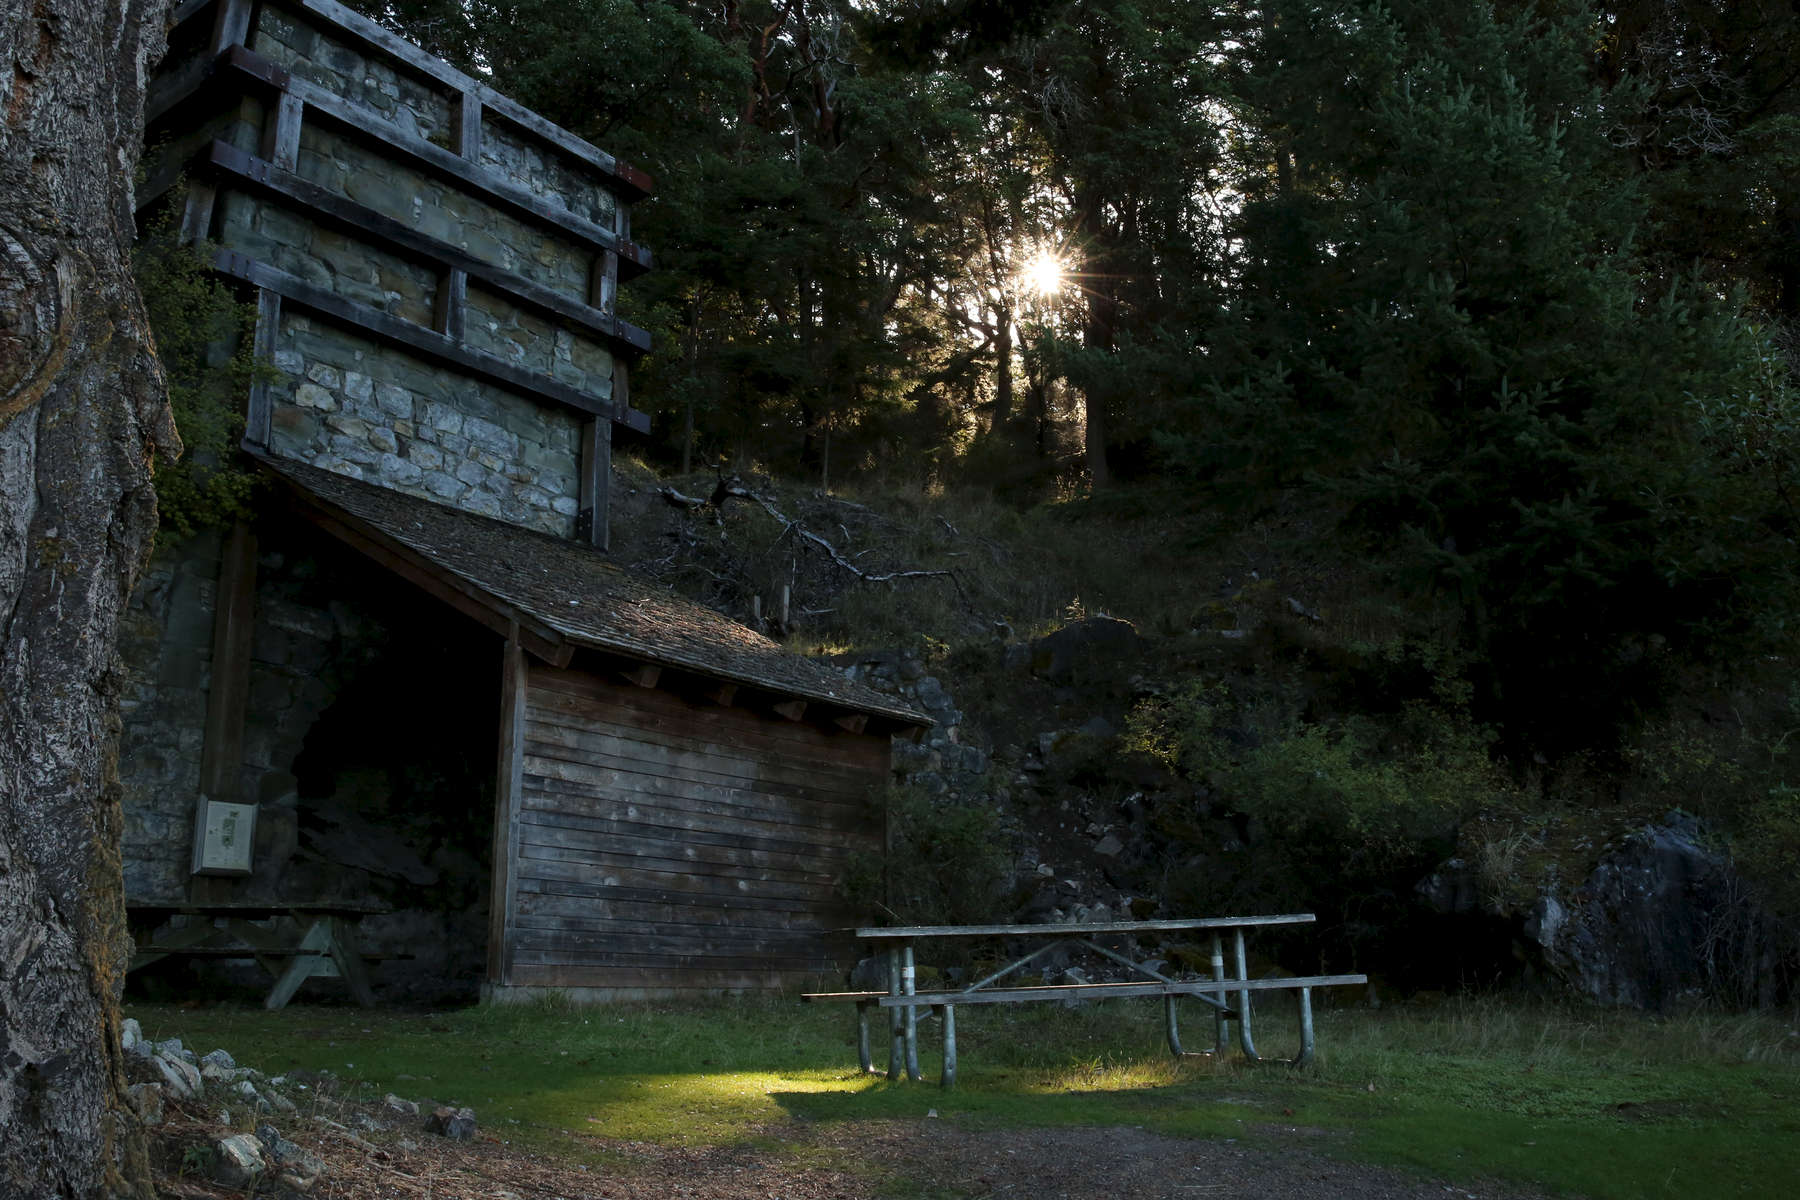 The sun cuts though the trees to illuminate a spot on the ground at Lime Kiln Point State Park.